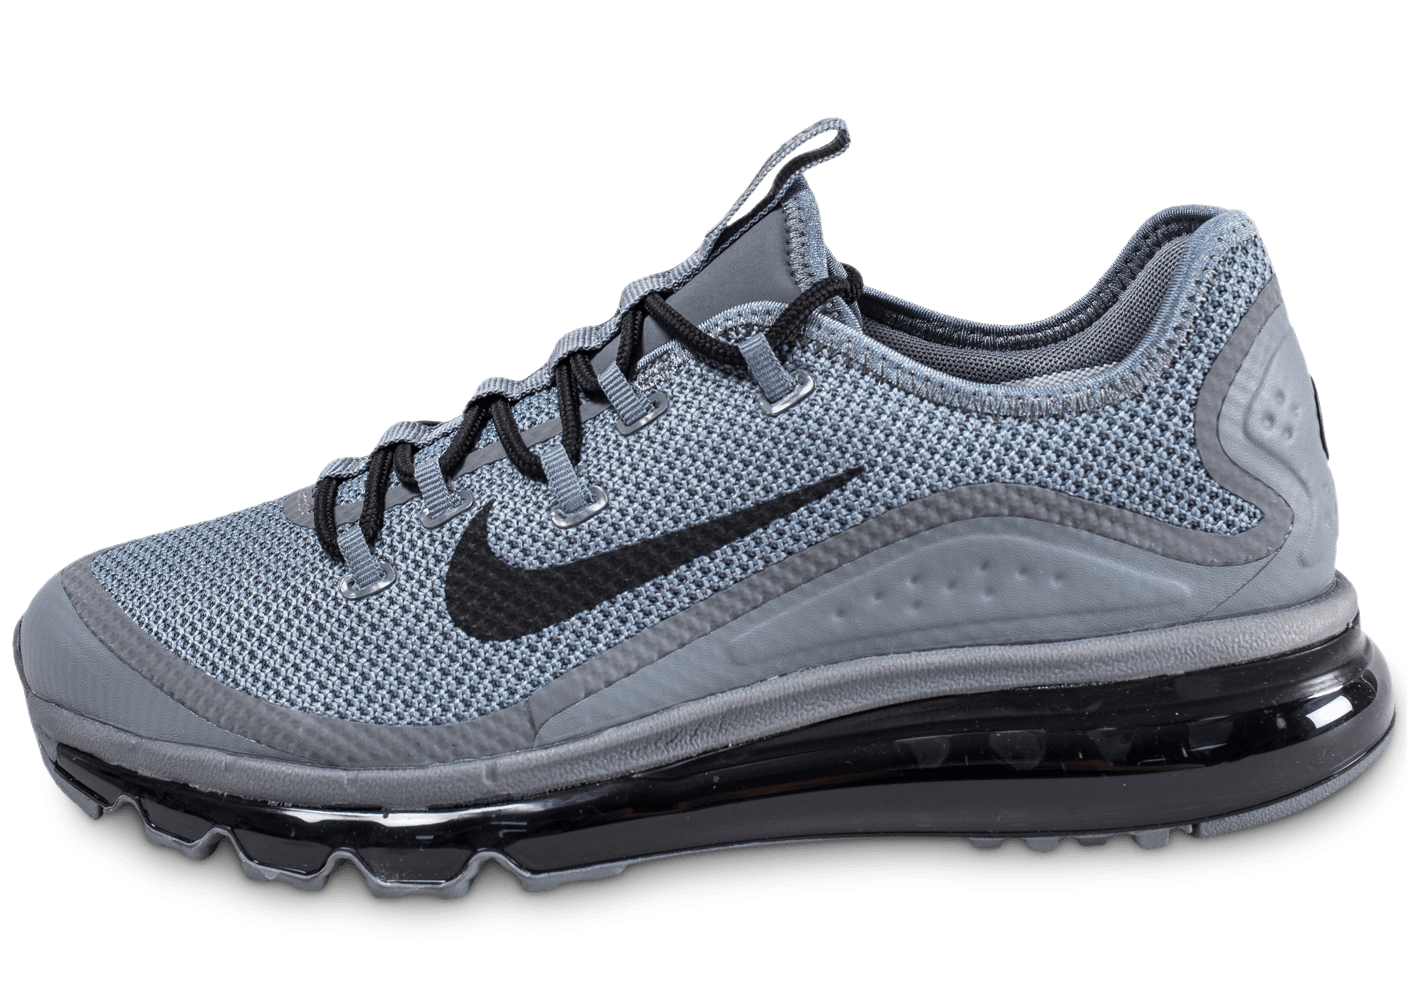 Nike chaussure nouvelle collection